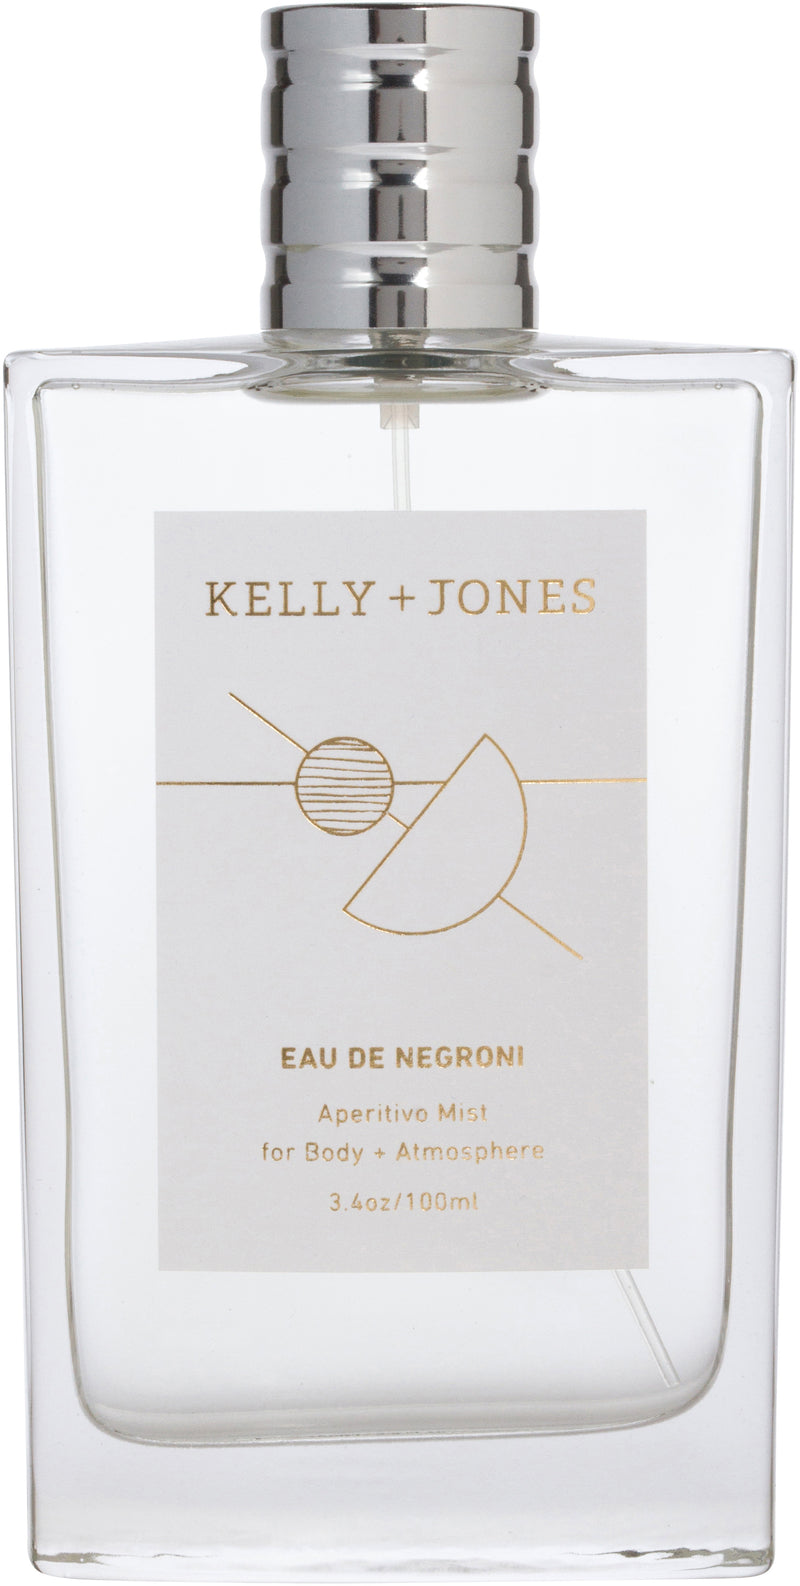 Eau de Negroni - Kelly and Jones